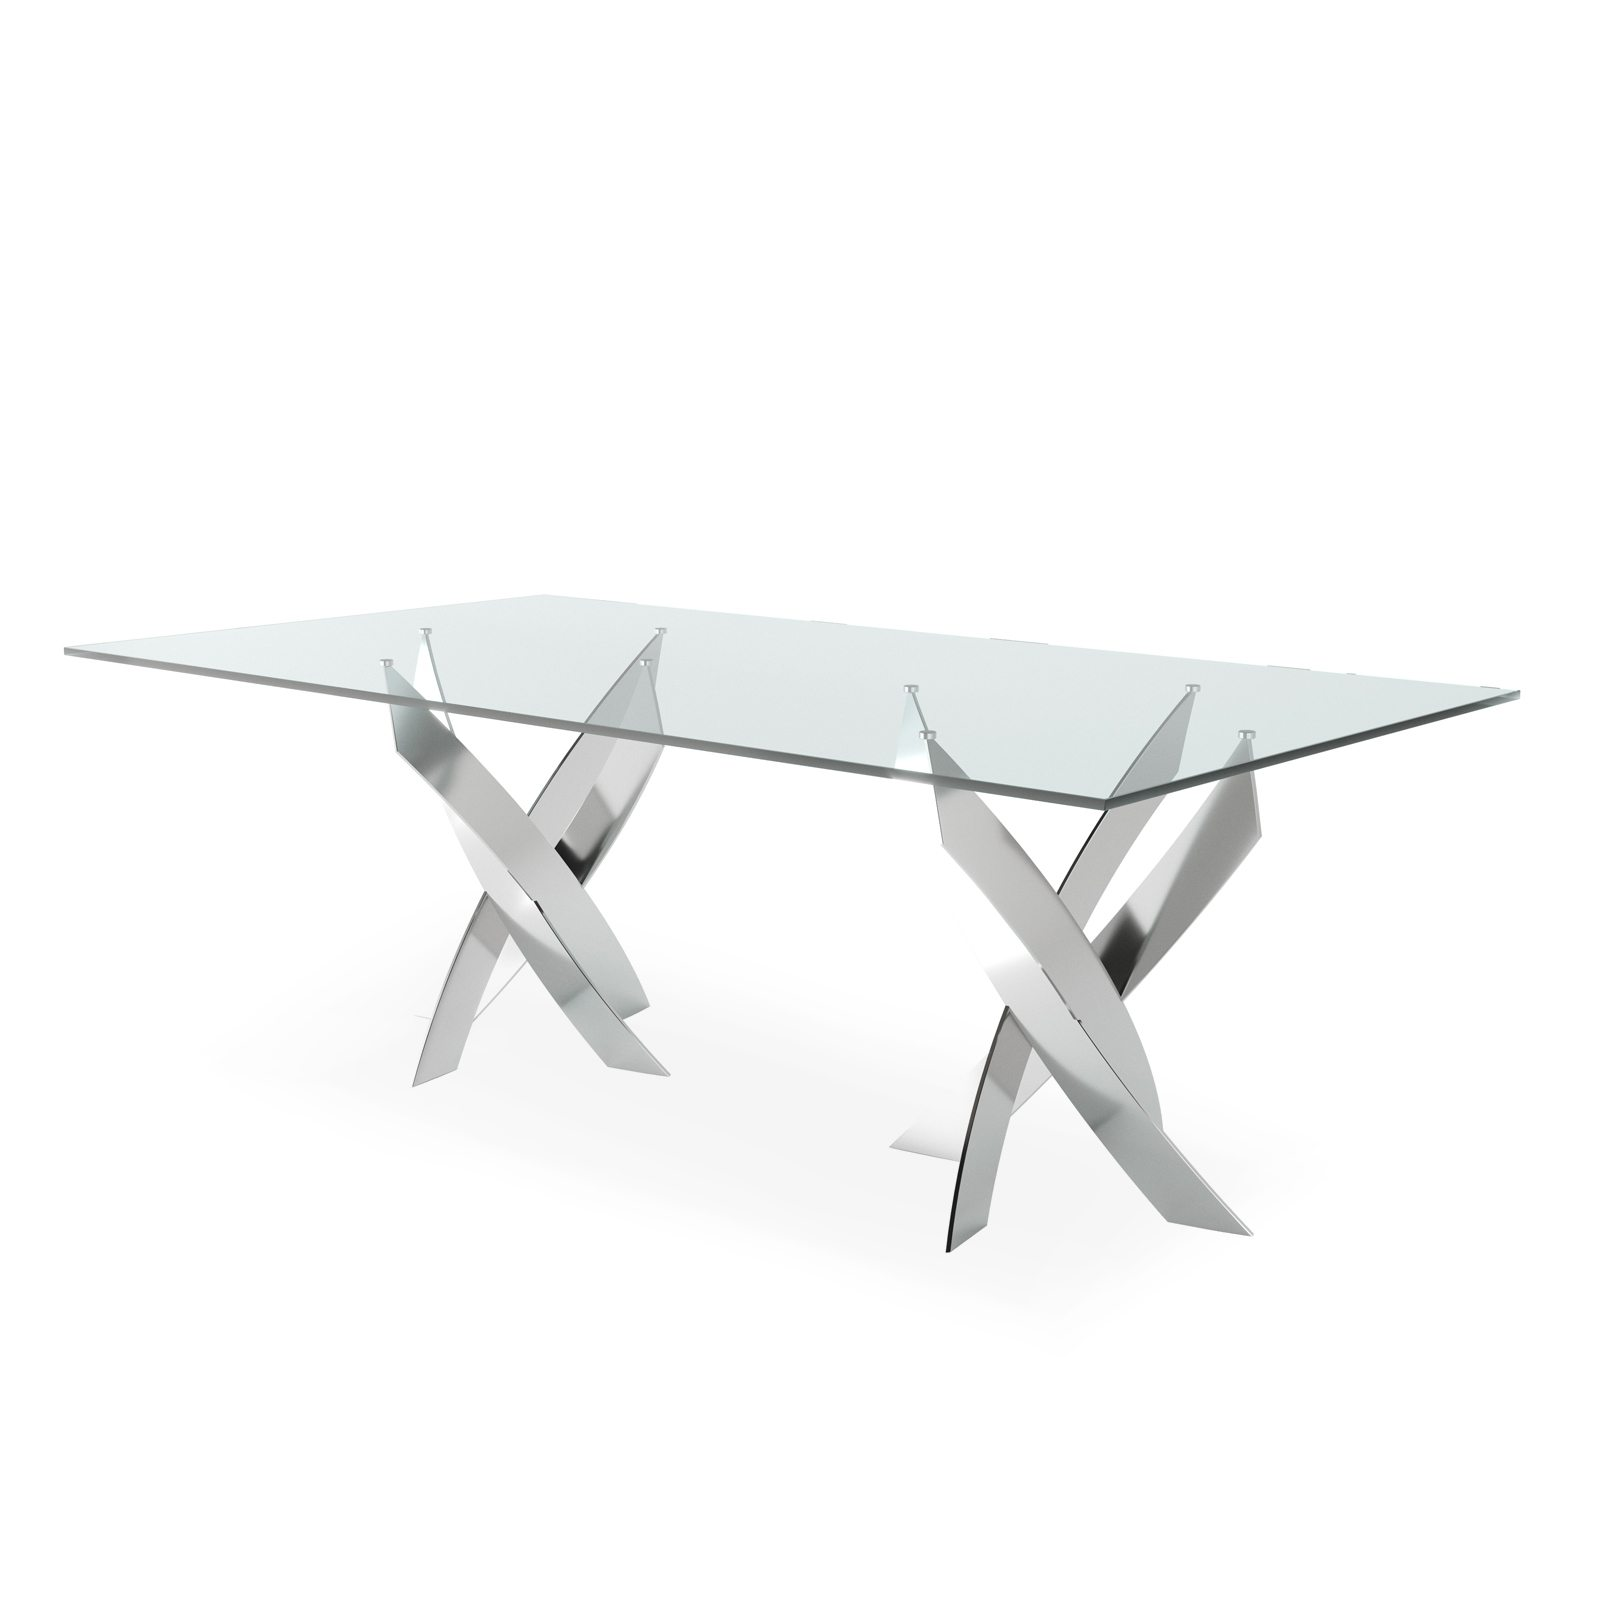 Helix-Dining-Table-Rectangle-Chrome-by-Bonham-&-Bonham-02